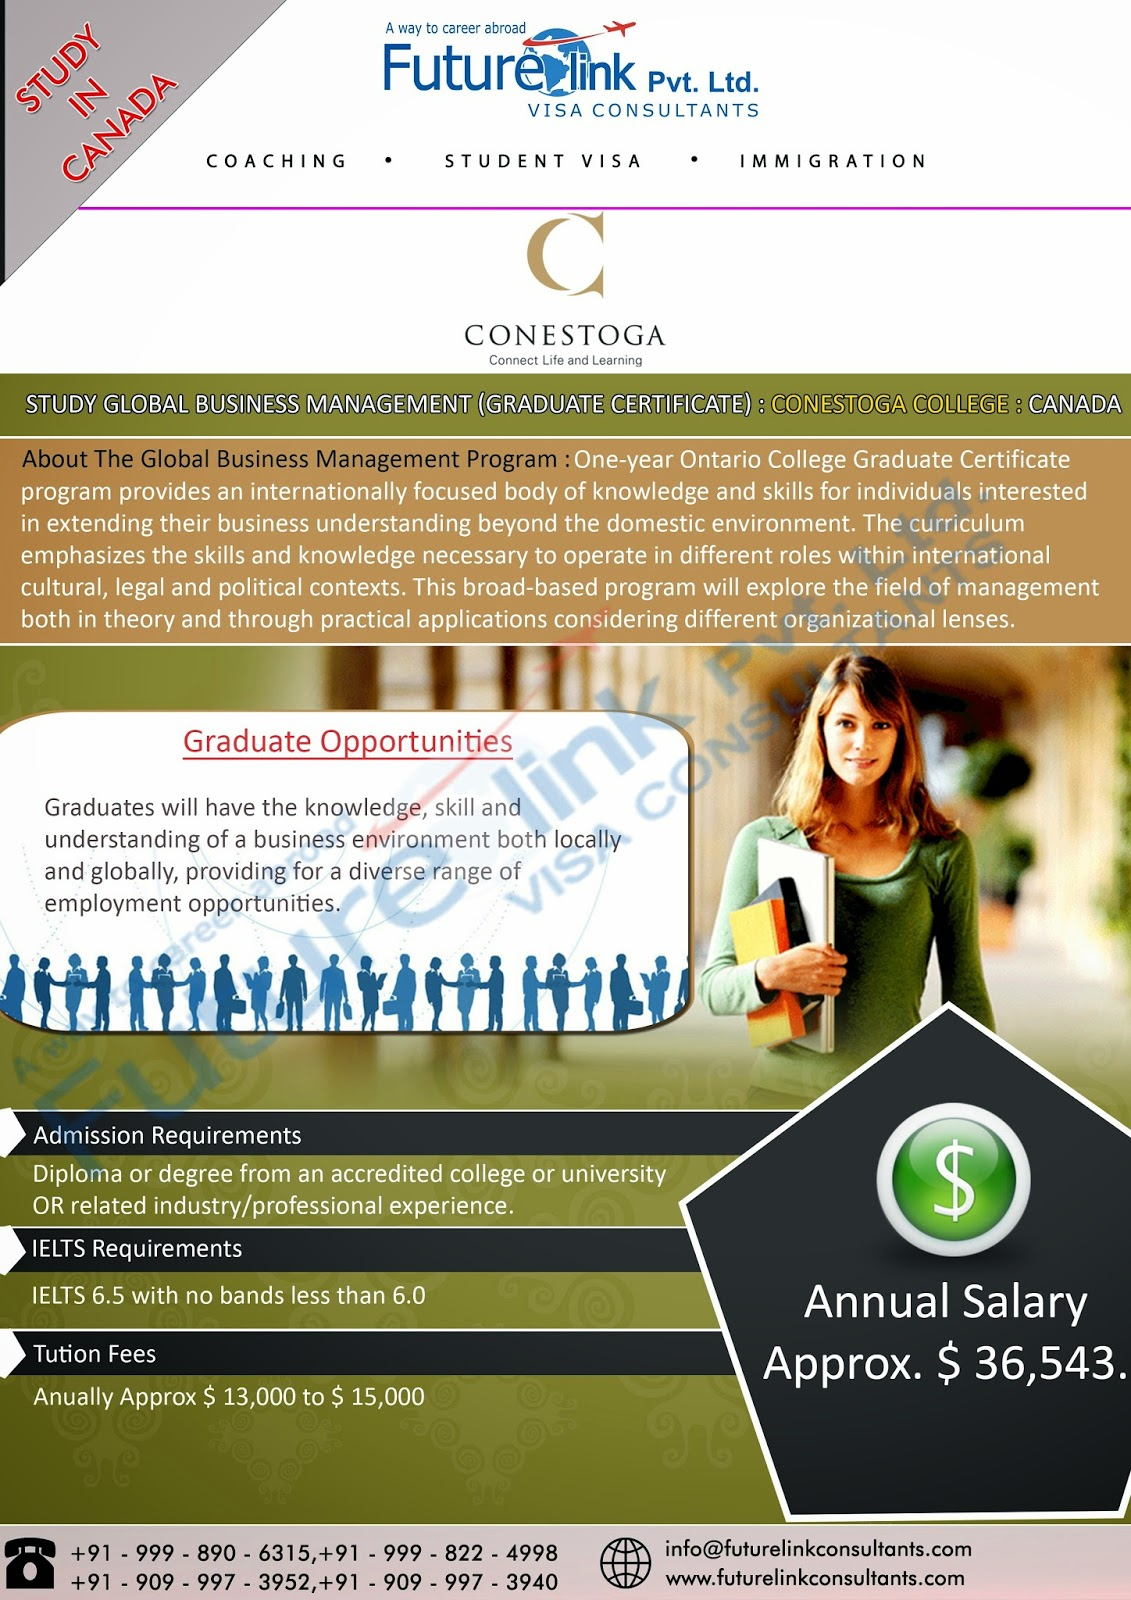 Future Link Consultants Canada Immigration Visa Consultants Student